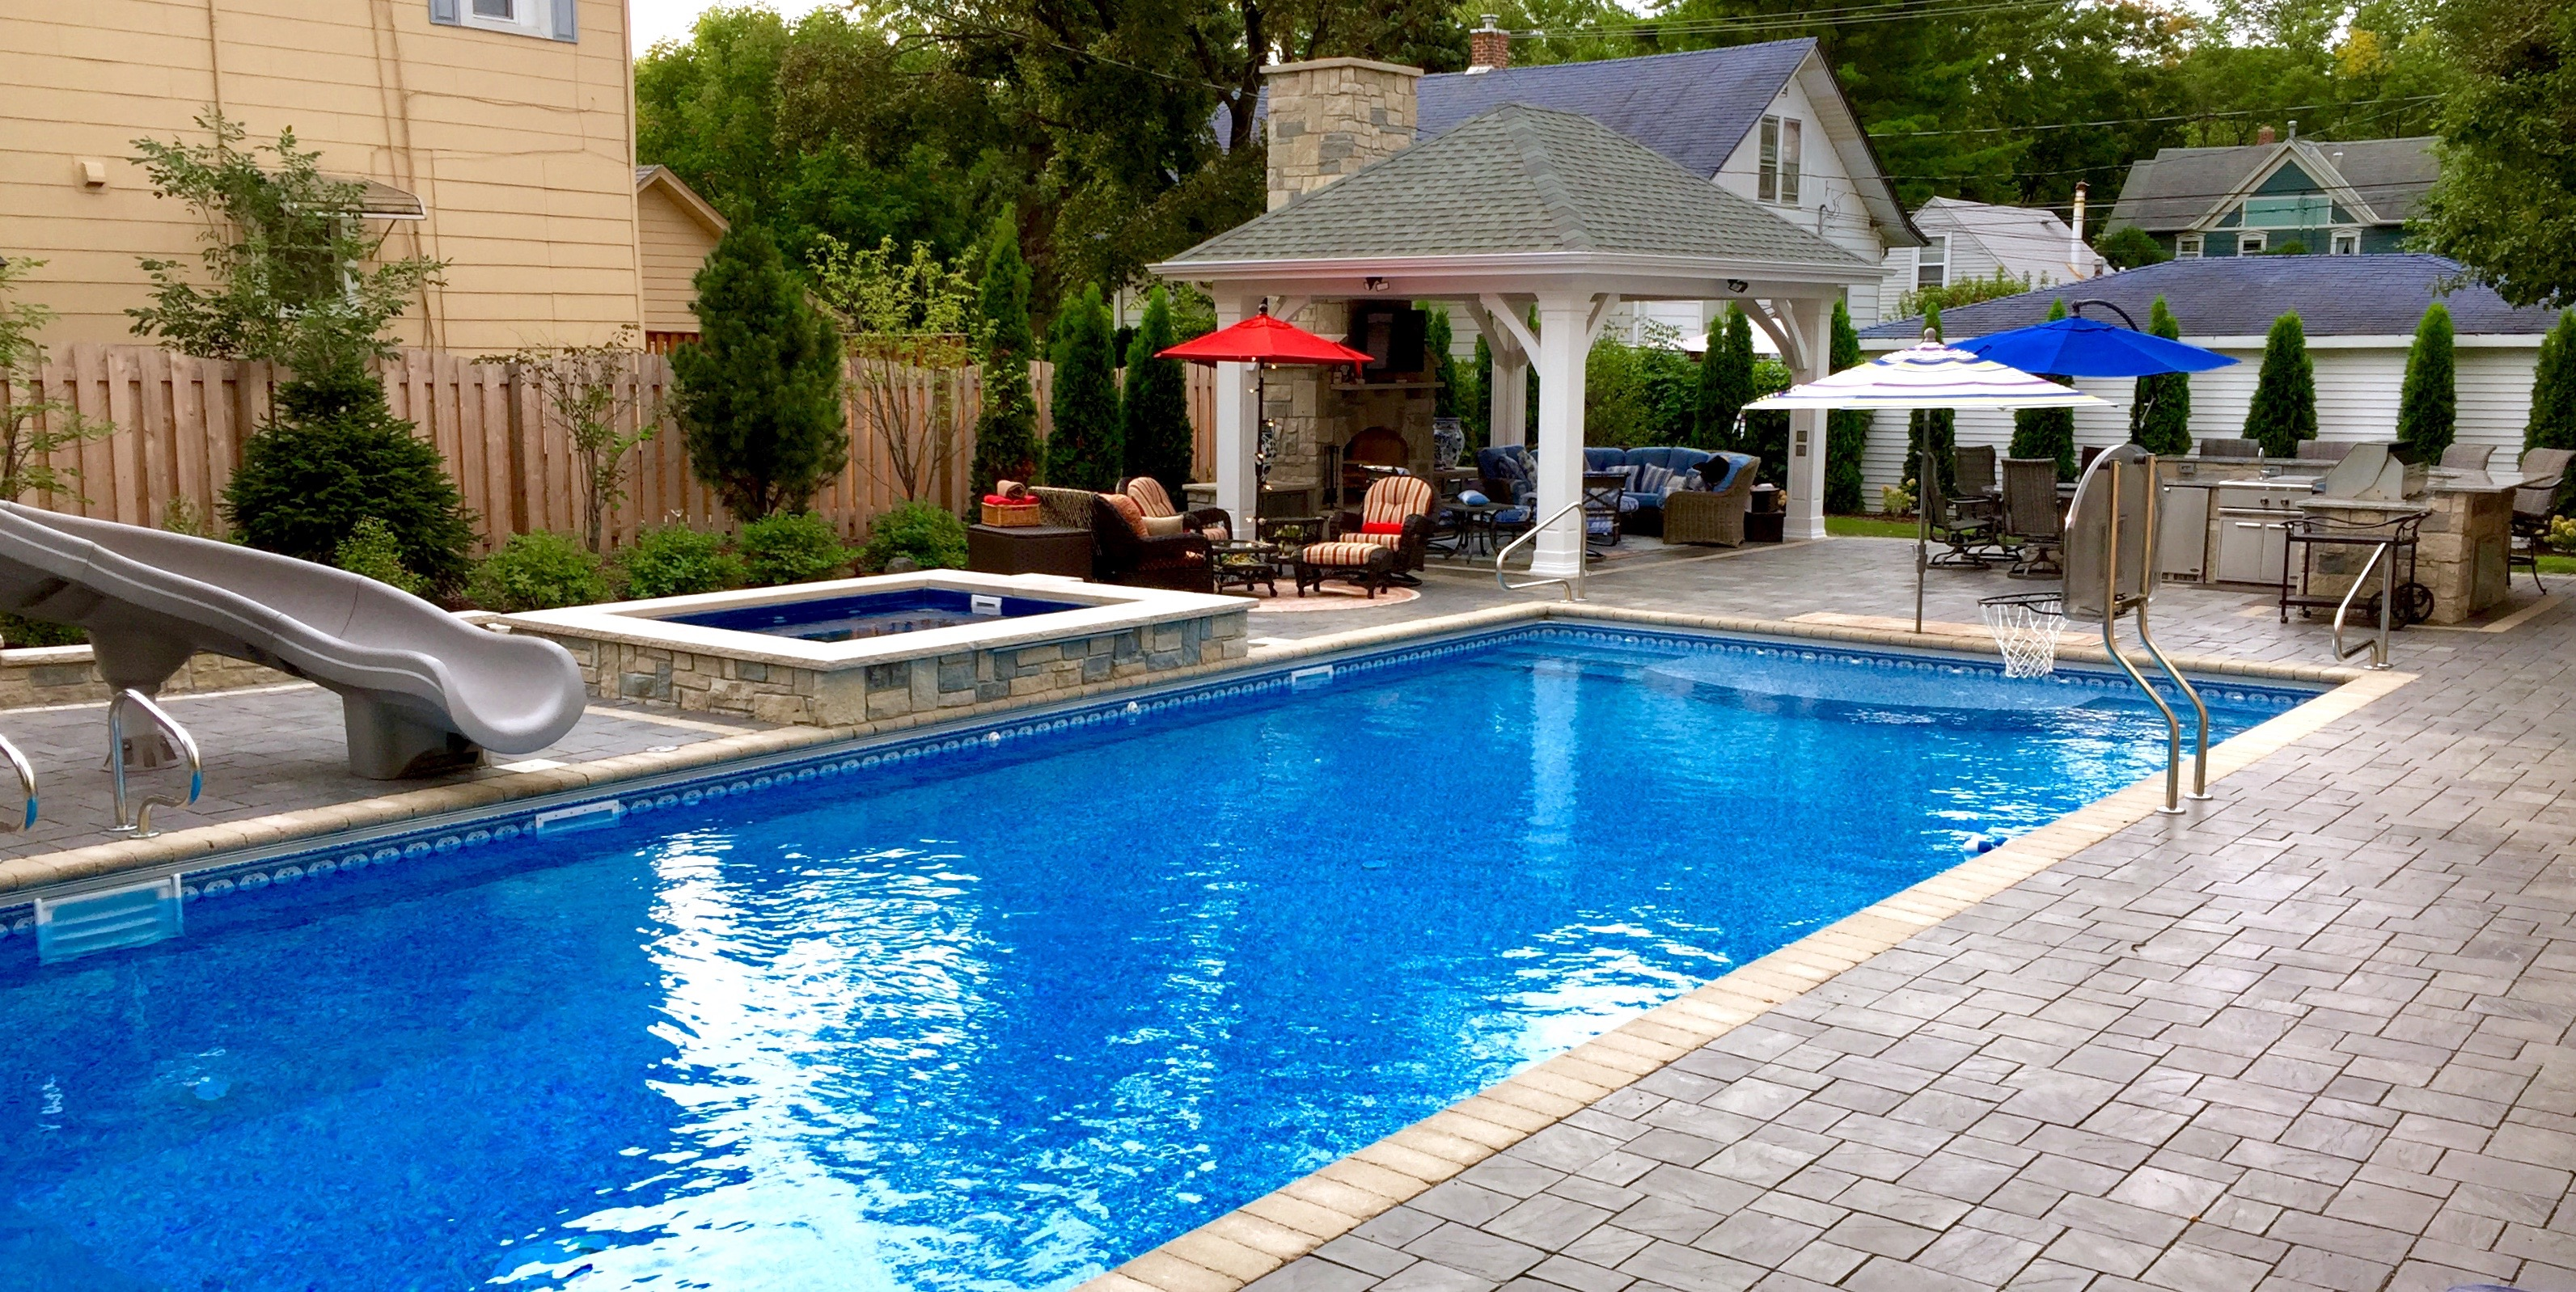 Patios cms landscapes for Pool with fireplace